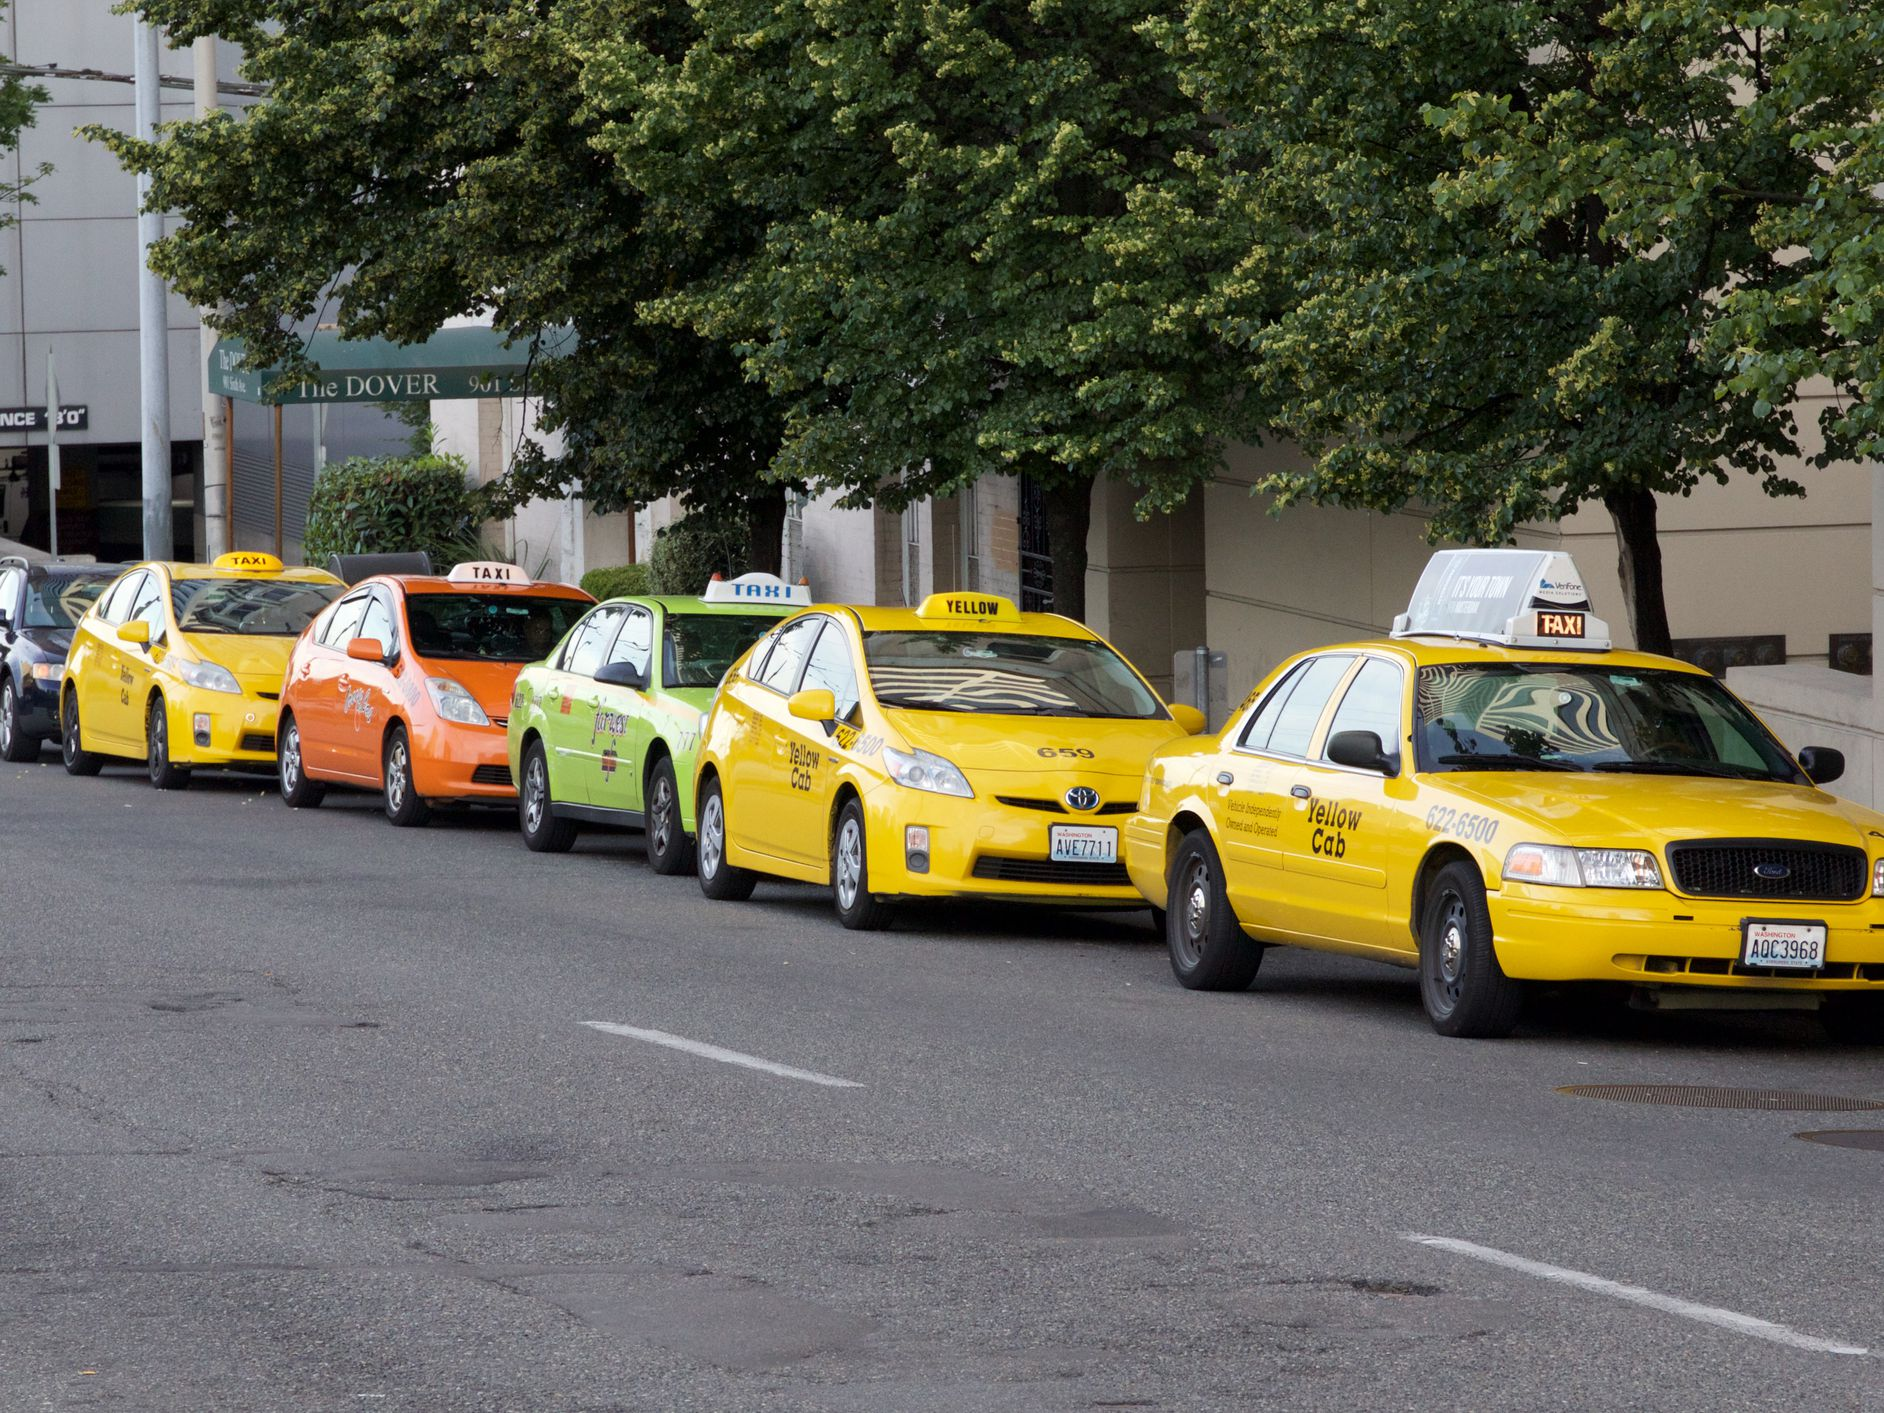 Seattle Taxis, Uber and Lyft - Where and How to Get a Ride